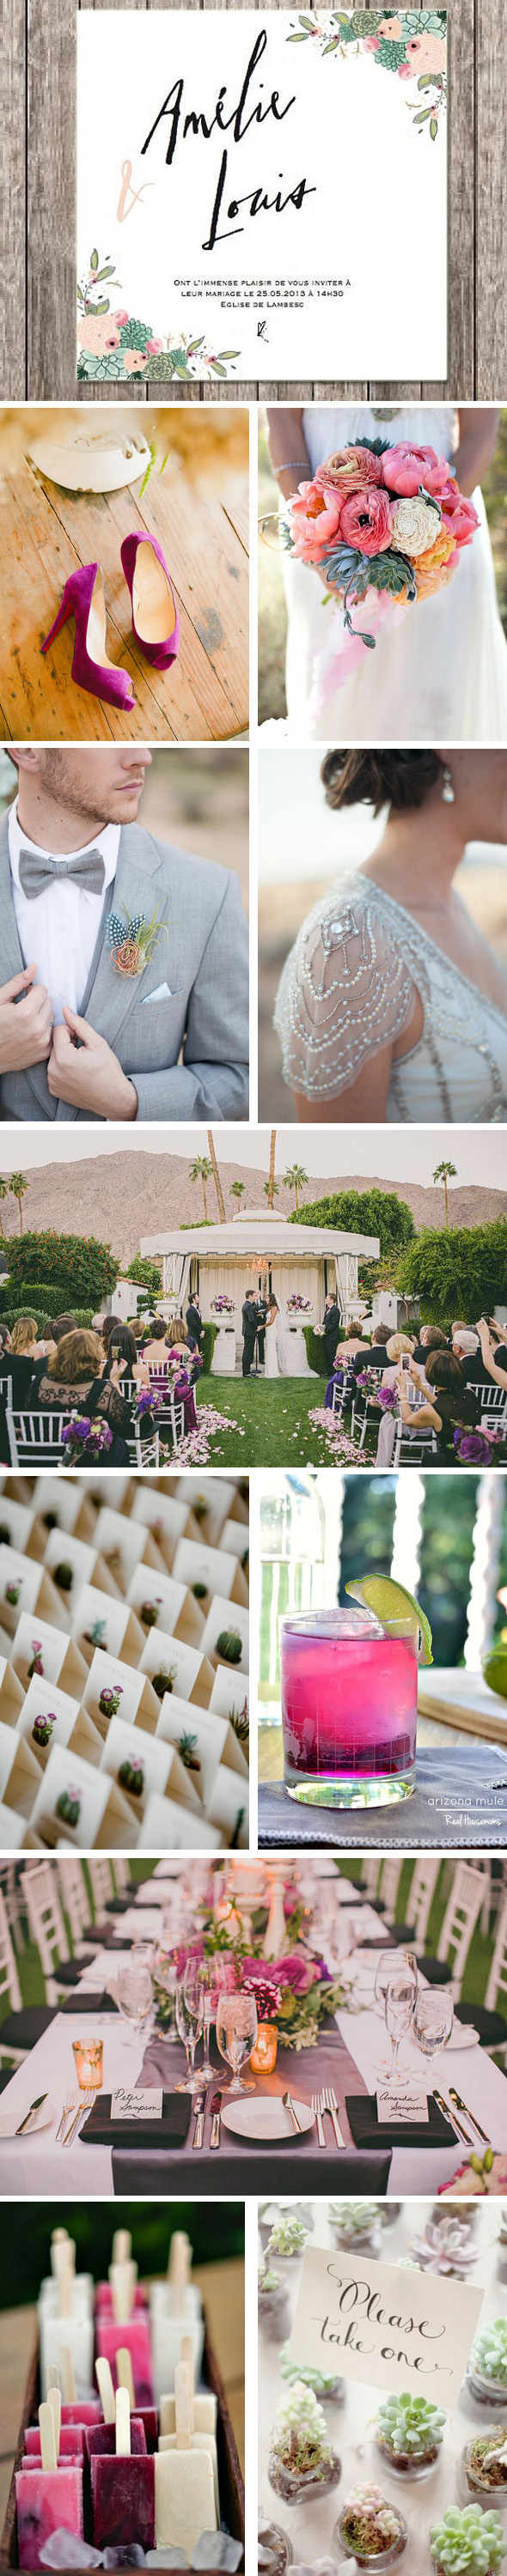 Desert Wedding Board1 Elegant Desert Wedding Inspiration